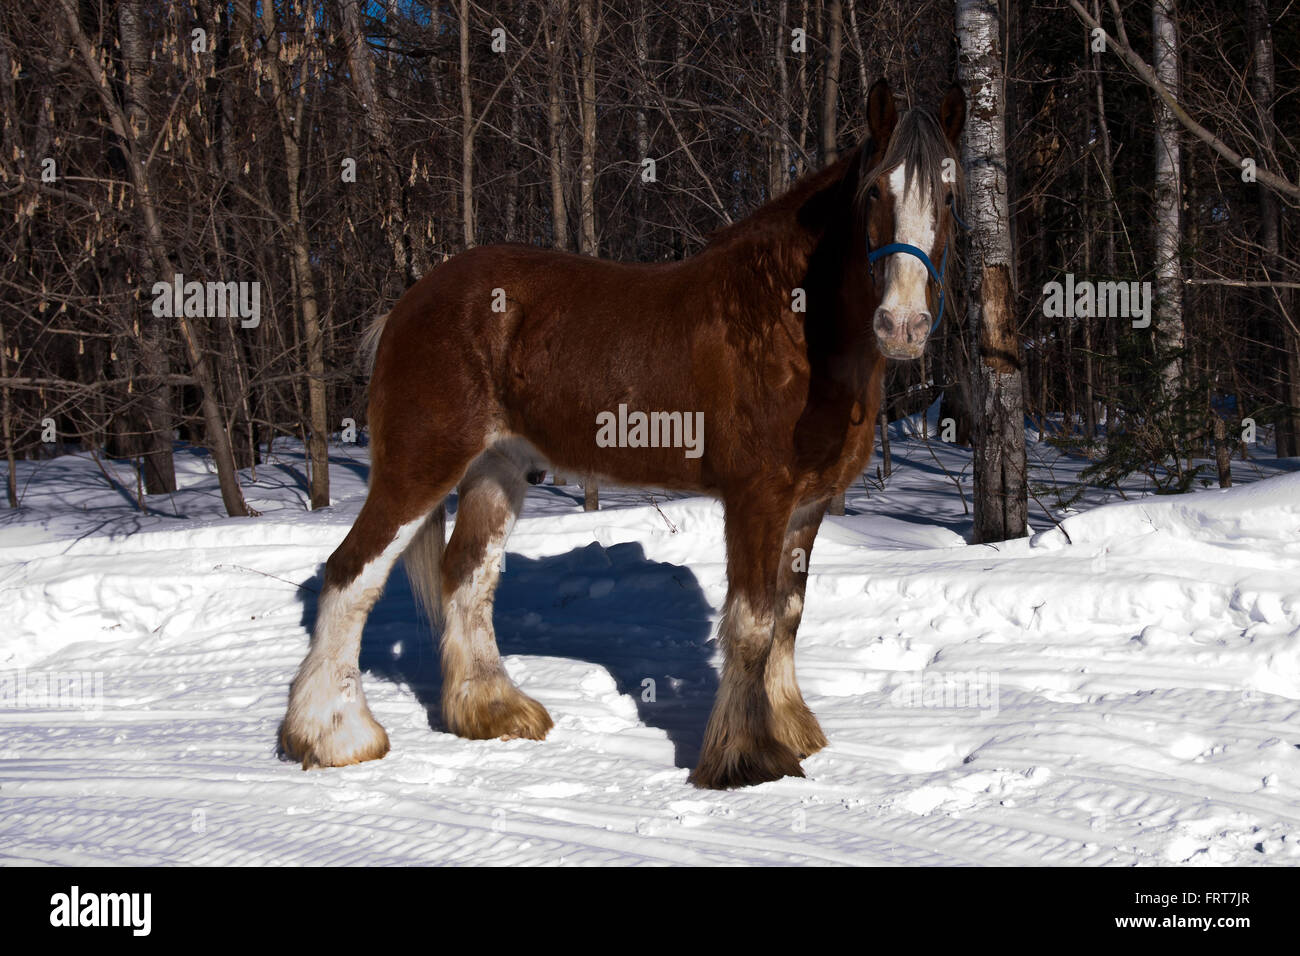 Clydesdale High Resolution Stock Photography And Images Alamy